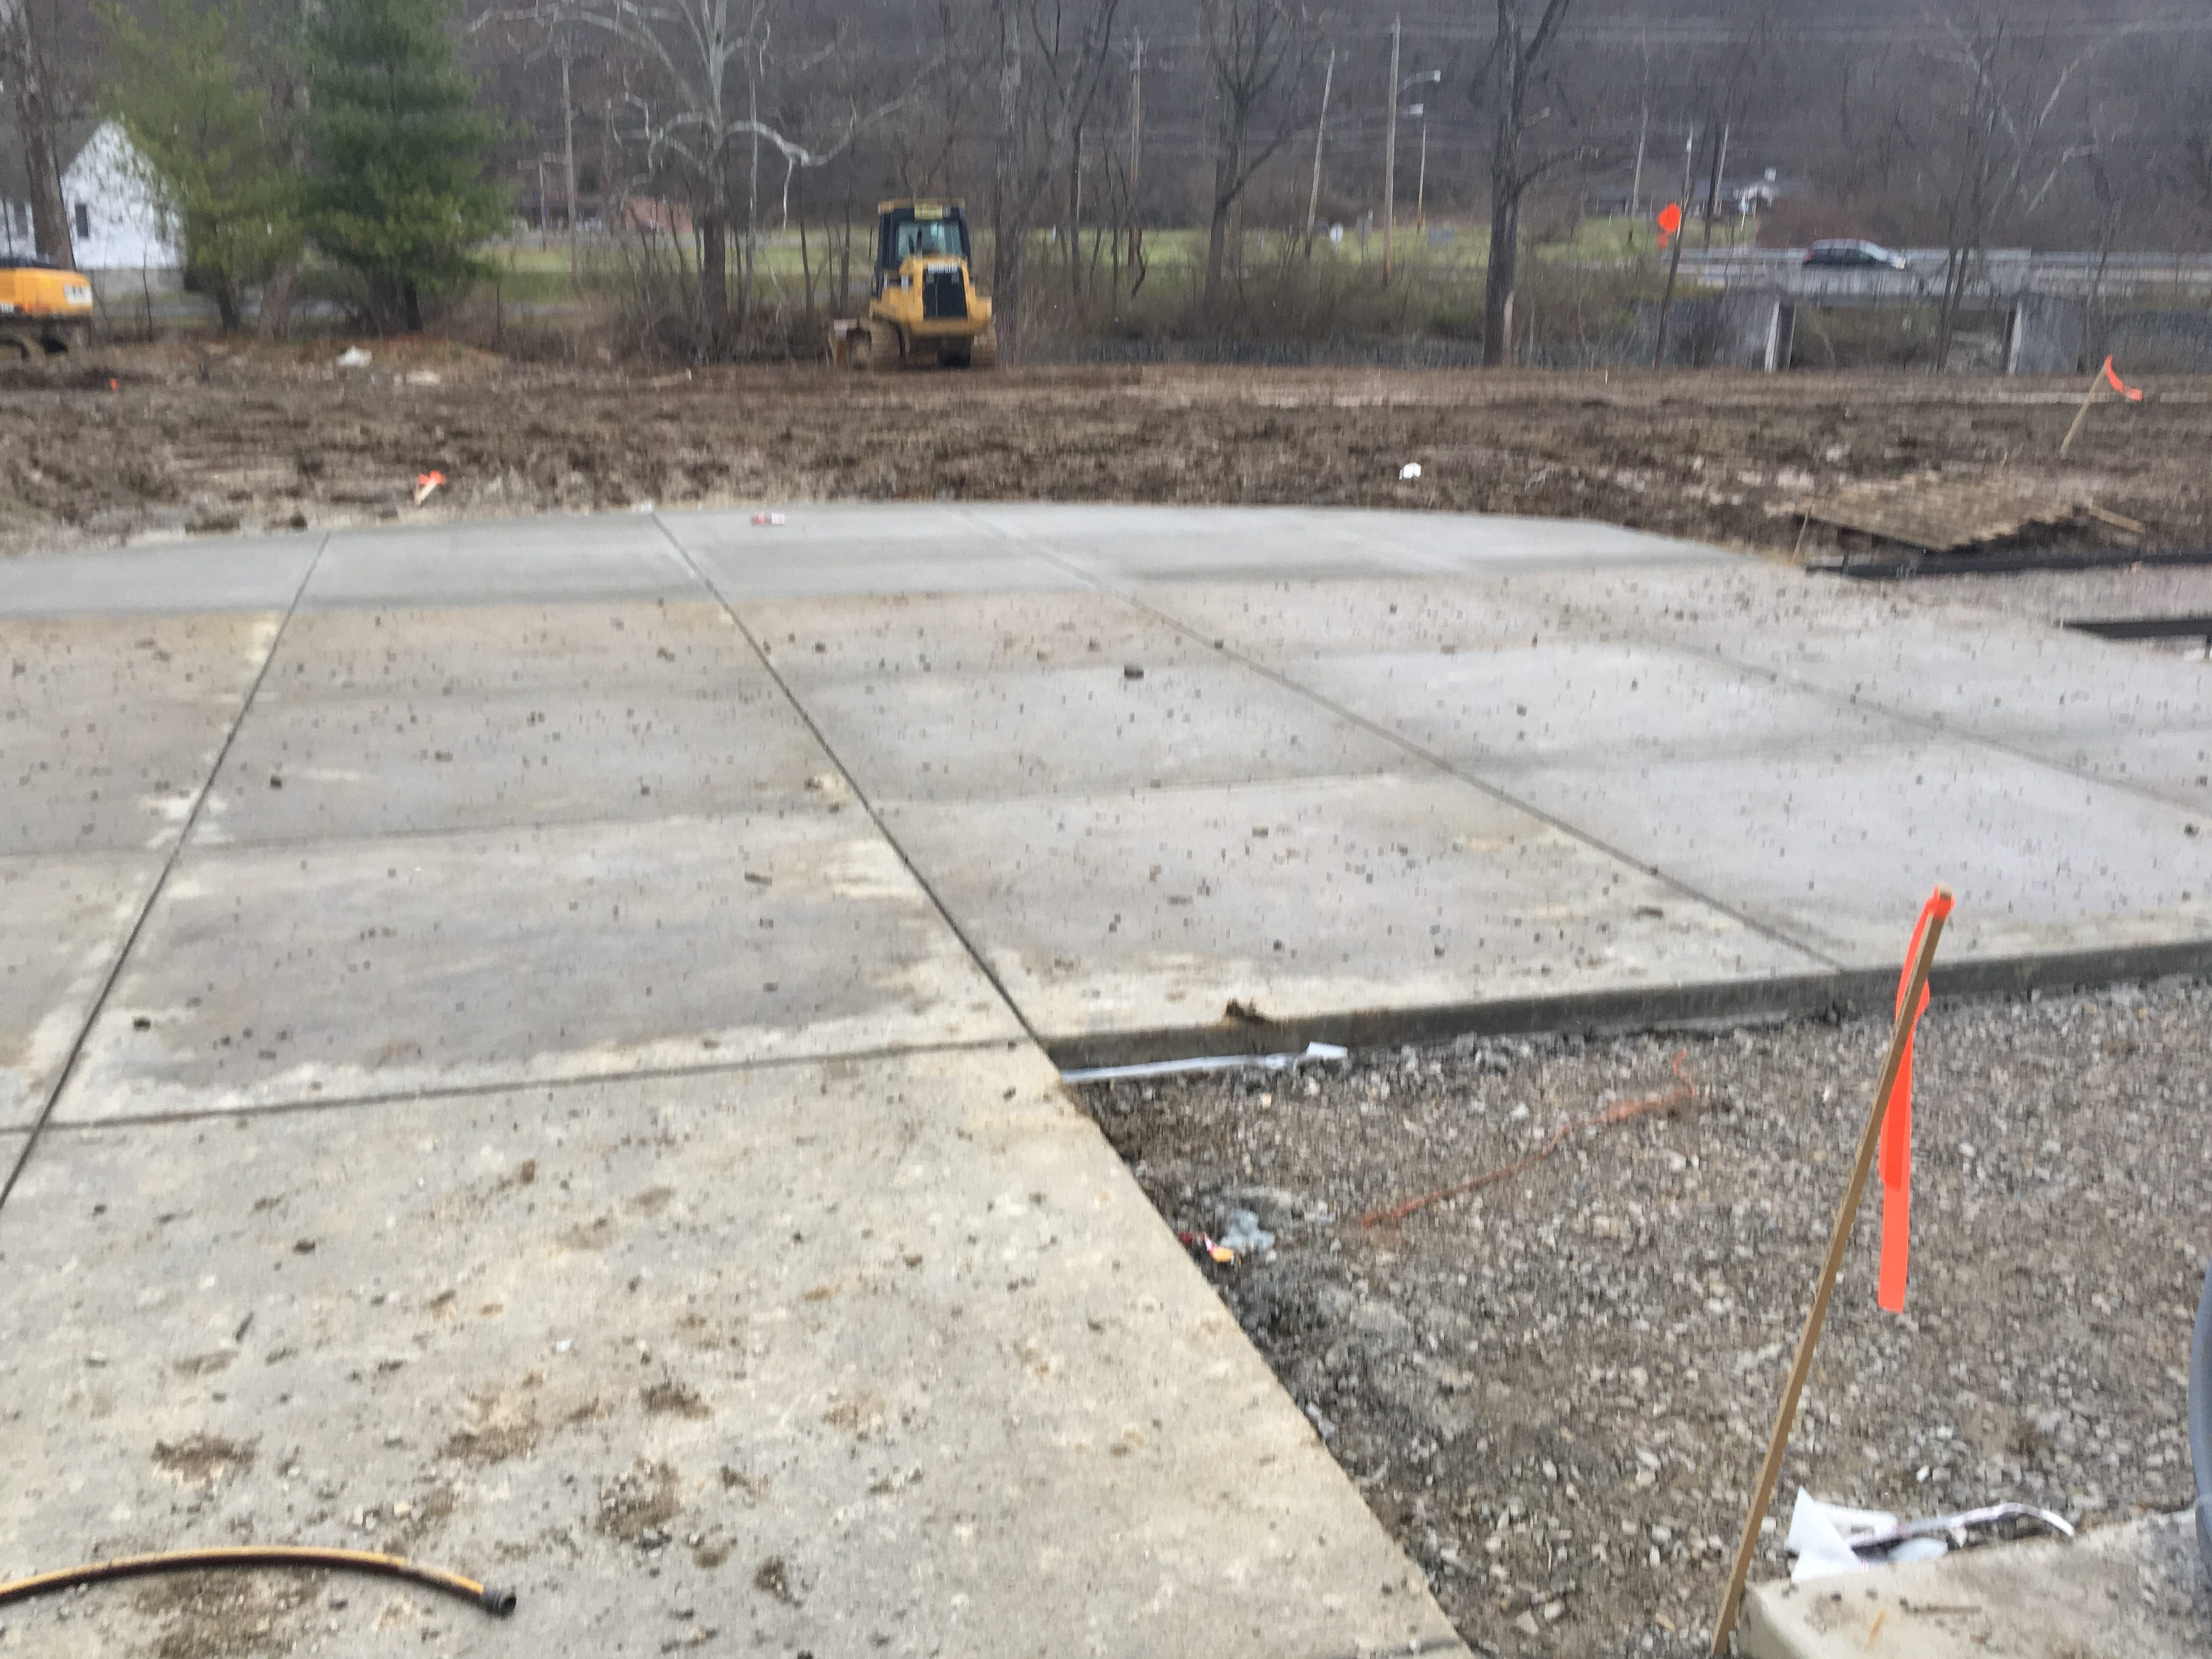 The facility will feature a patio on both the men's and women's sides. Opening later in December 2018, Project 180 residential treatment facility involved the renovation of Pleasure Isle recreation complex in Erlanger.